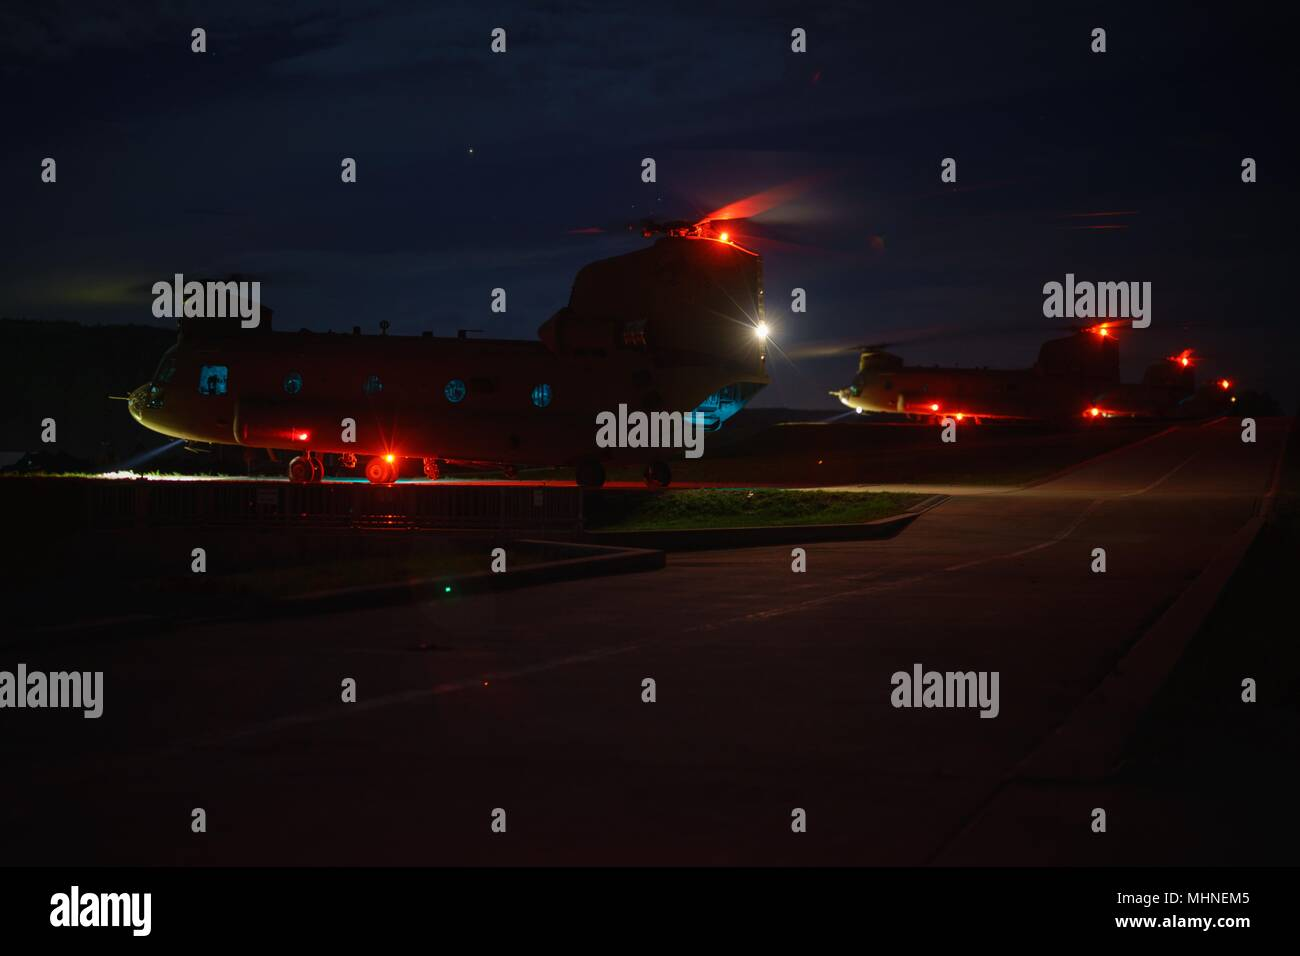 CH-47 Chinook helicopter flight crews of Company B, 2nd General Support Aviation Battalion, 227th Aviation Regiment, 1st Air Cavalry Brigade, 1st Cavalry Division, prepare for takeoff in support of a night assault training mission at Hohenfels Training Area, Germany, April 23, 2018, April 23, 2018. Soldiers of the battalion are providing aviation support during Joint Warfighting Assessment 18, an exercise that increases training readiness, future force development and interoperability with NATO allies. (U.S. Army photo by Sgt. Gregory T. Summers / 22nd Mobile Public Affairs Detachment) Image c - Stock Image